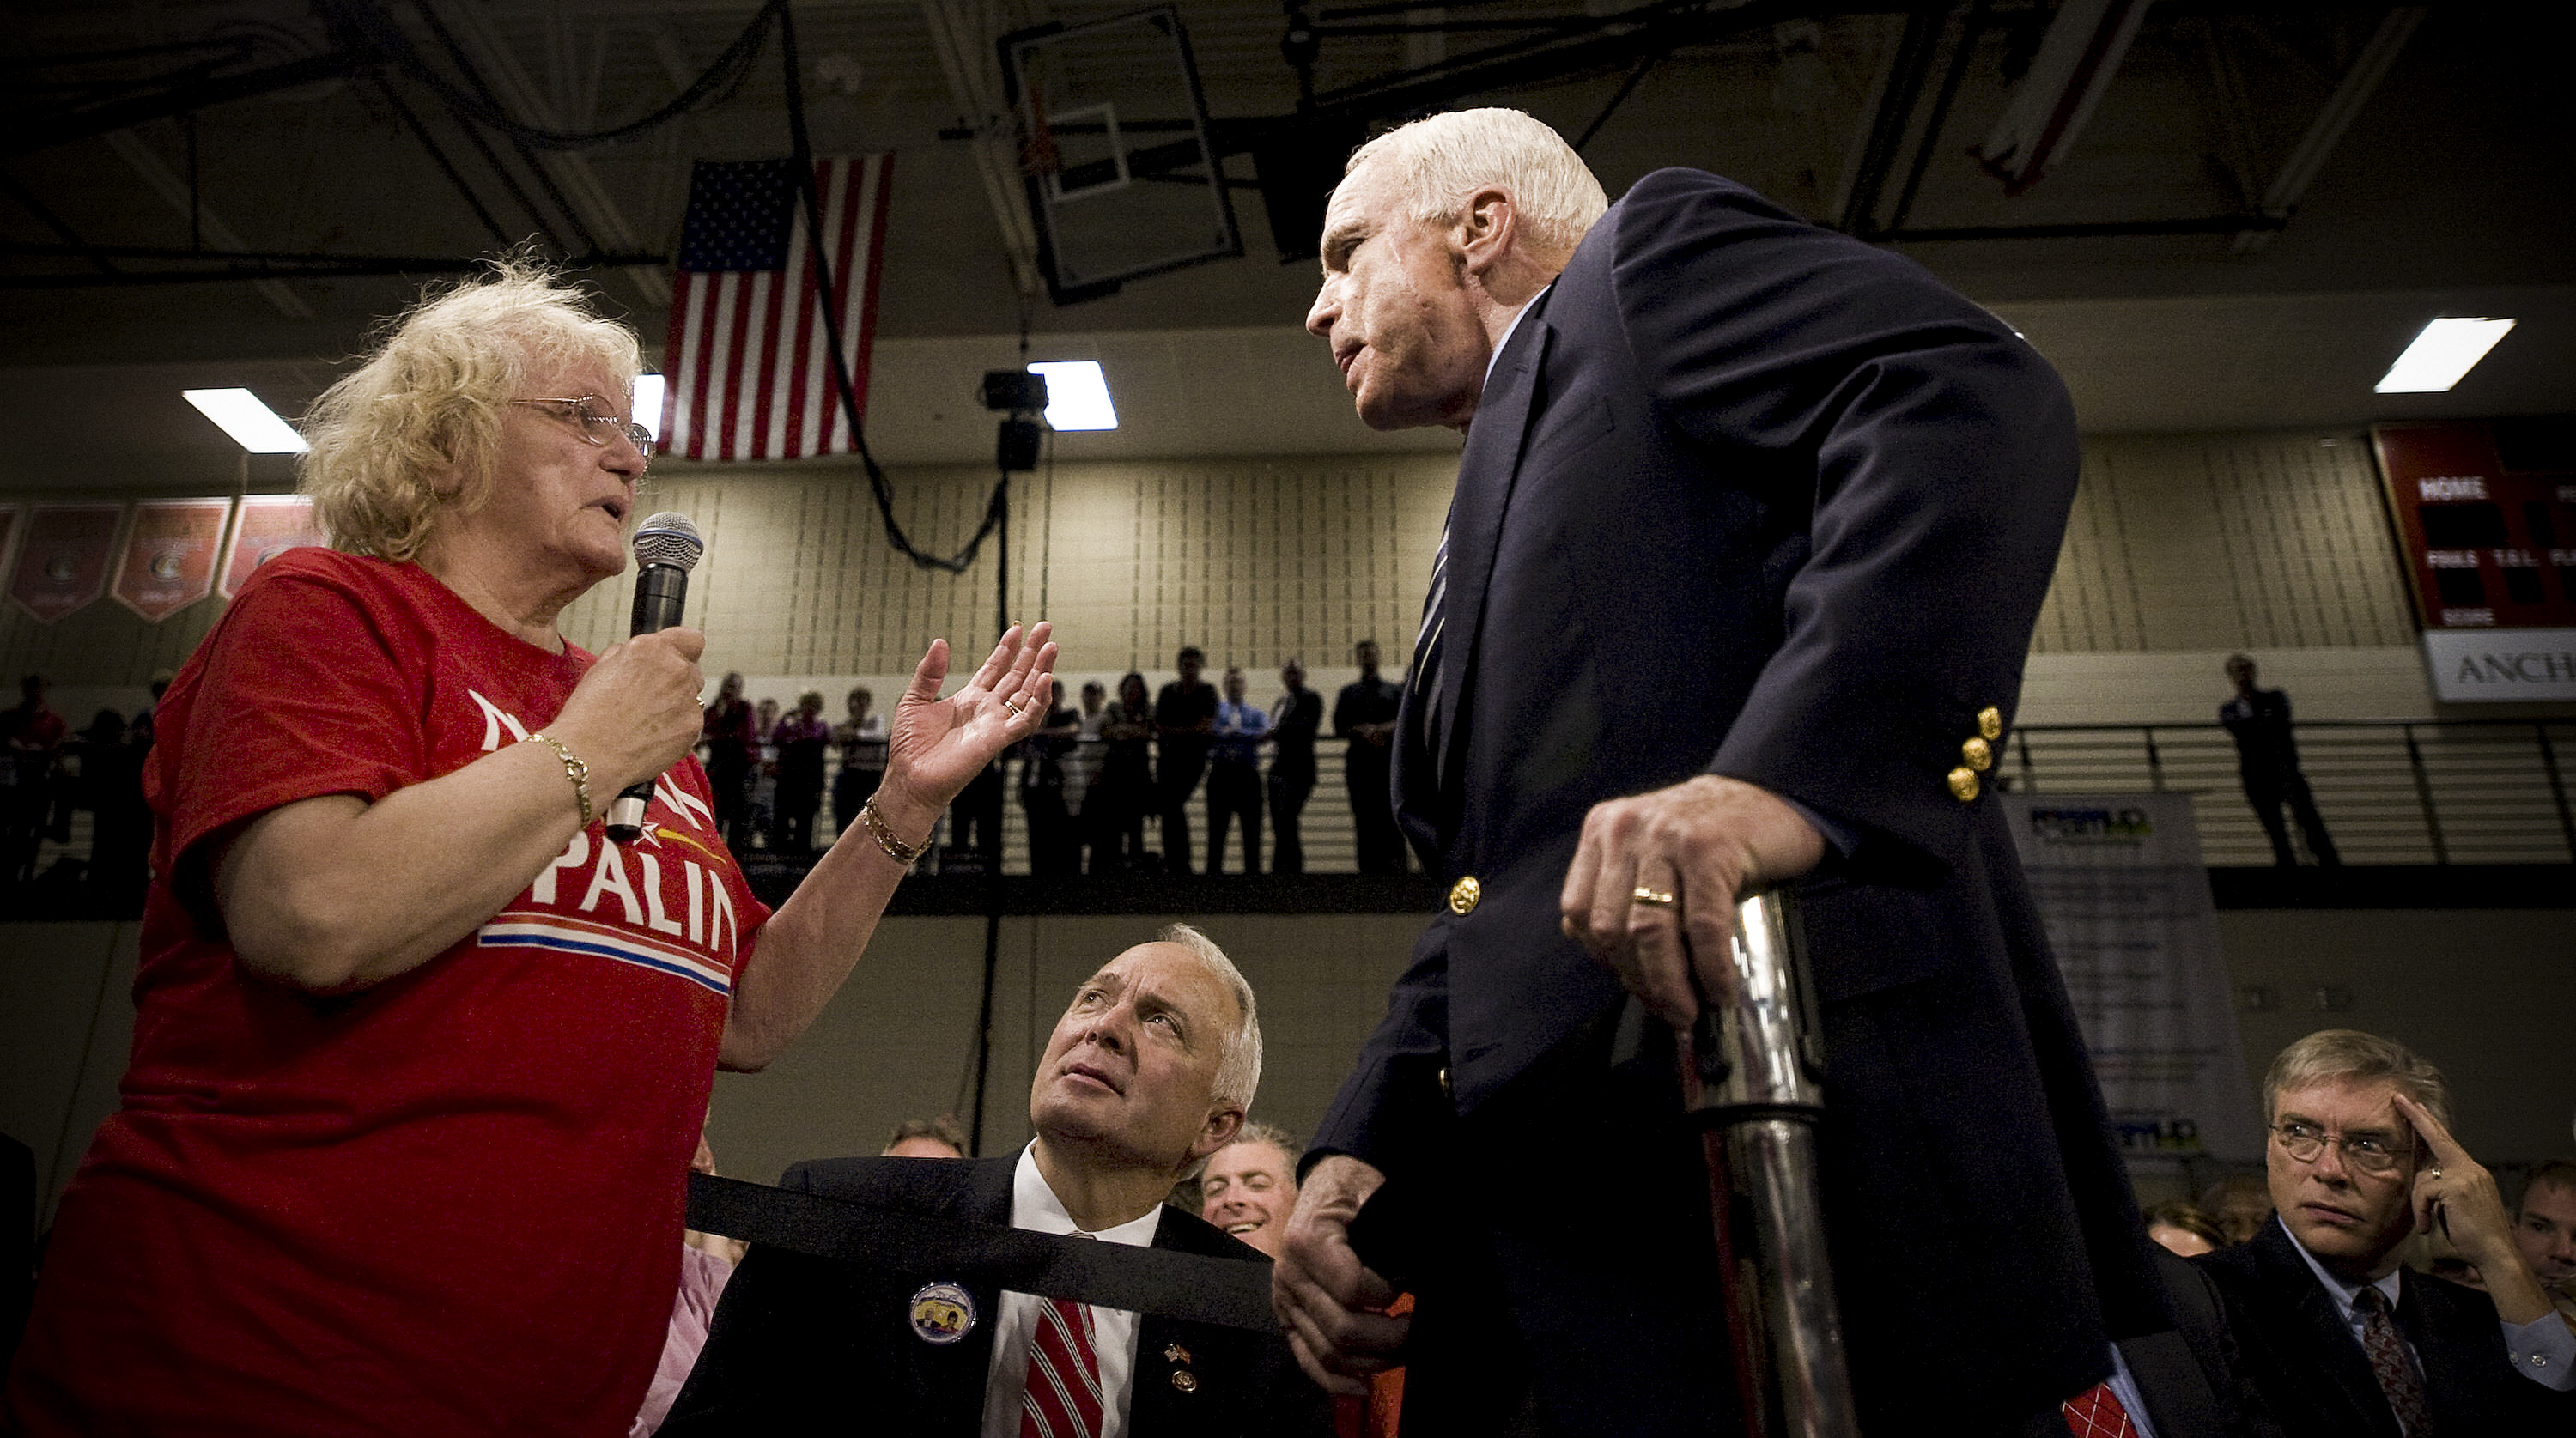 Watch John McCain defend Barack Obama against a racist voter in 2008